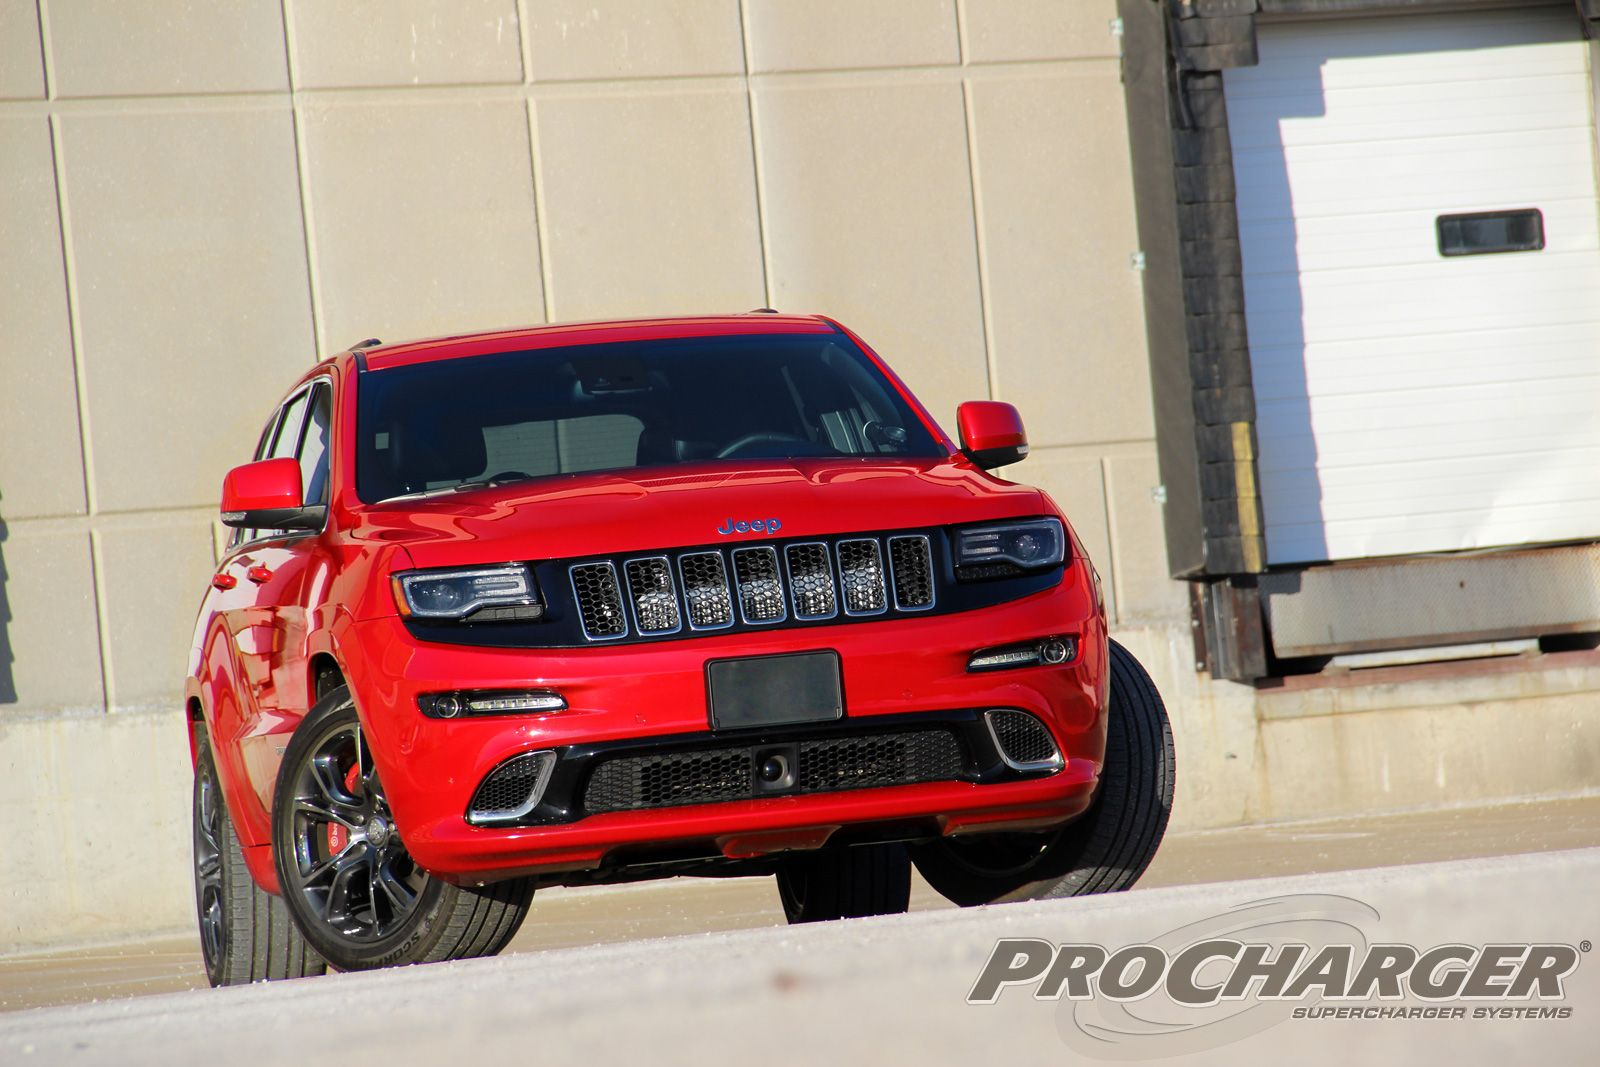 Procharger jeep srt8 wk1 intercooled supercharger system for 2006 2010 jeep grand cherokee srt8 with the bad ass hemi 6 1l www skspeed com pinterest